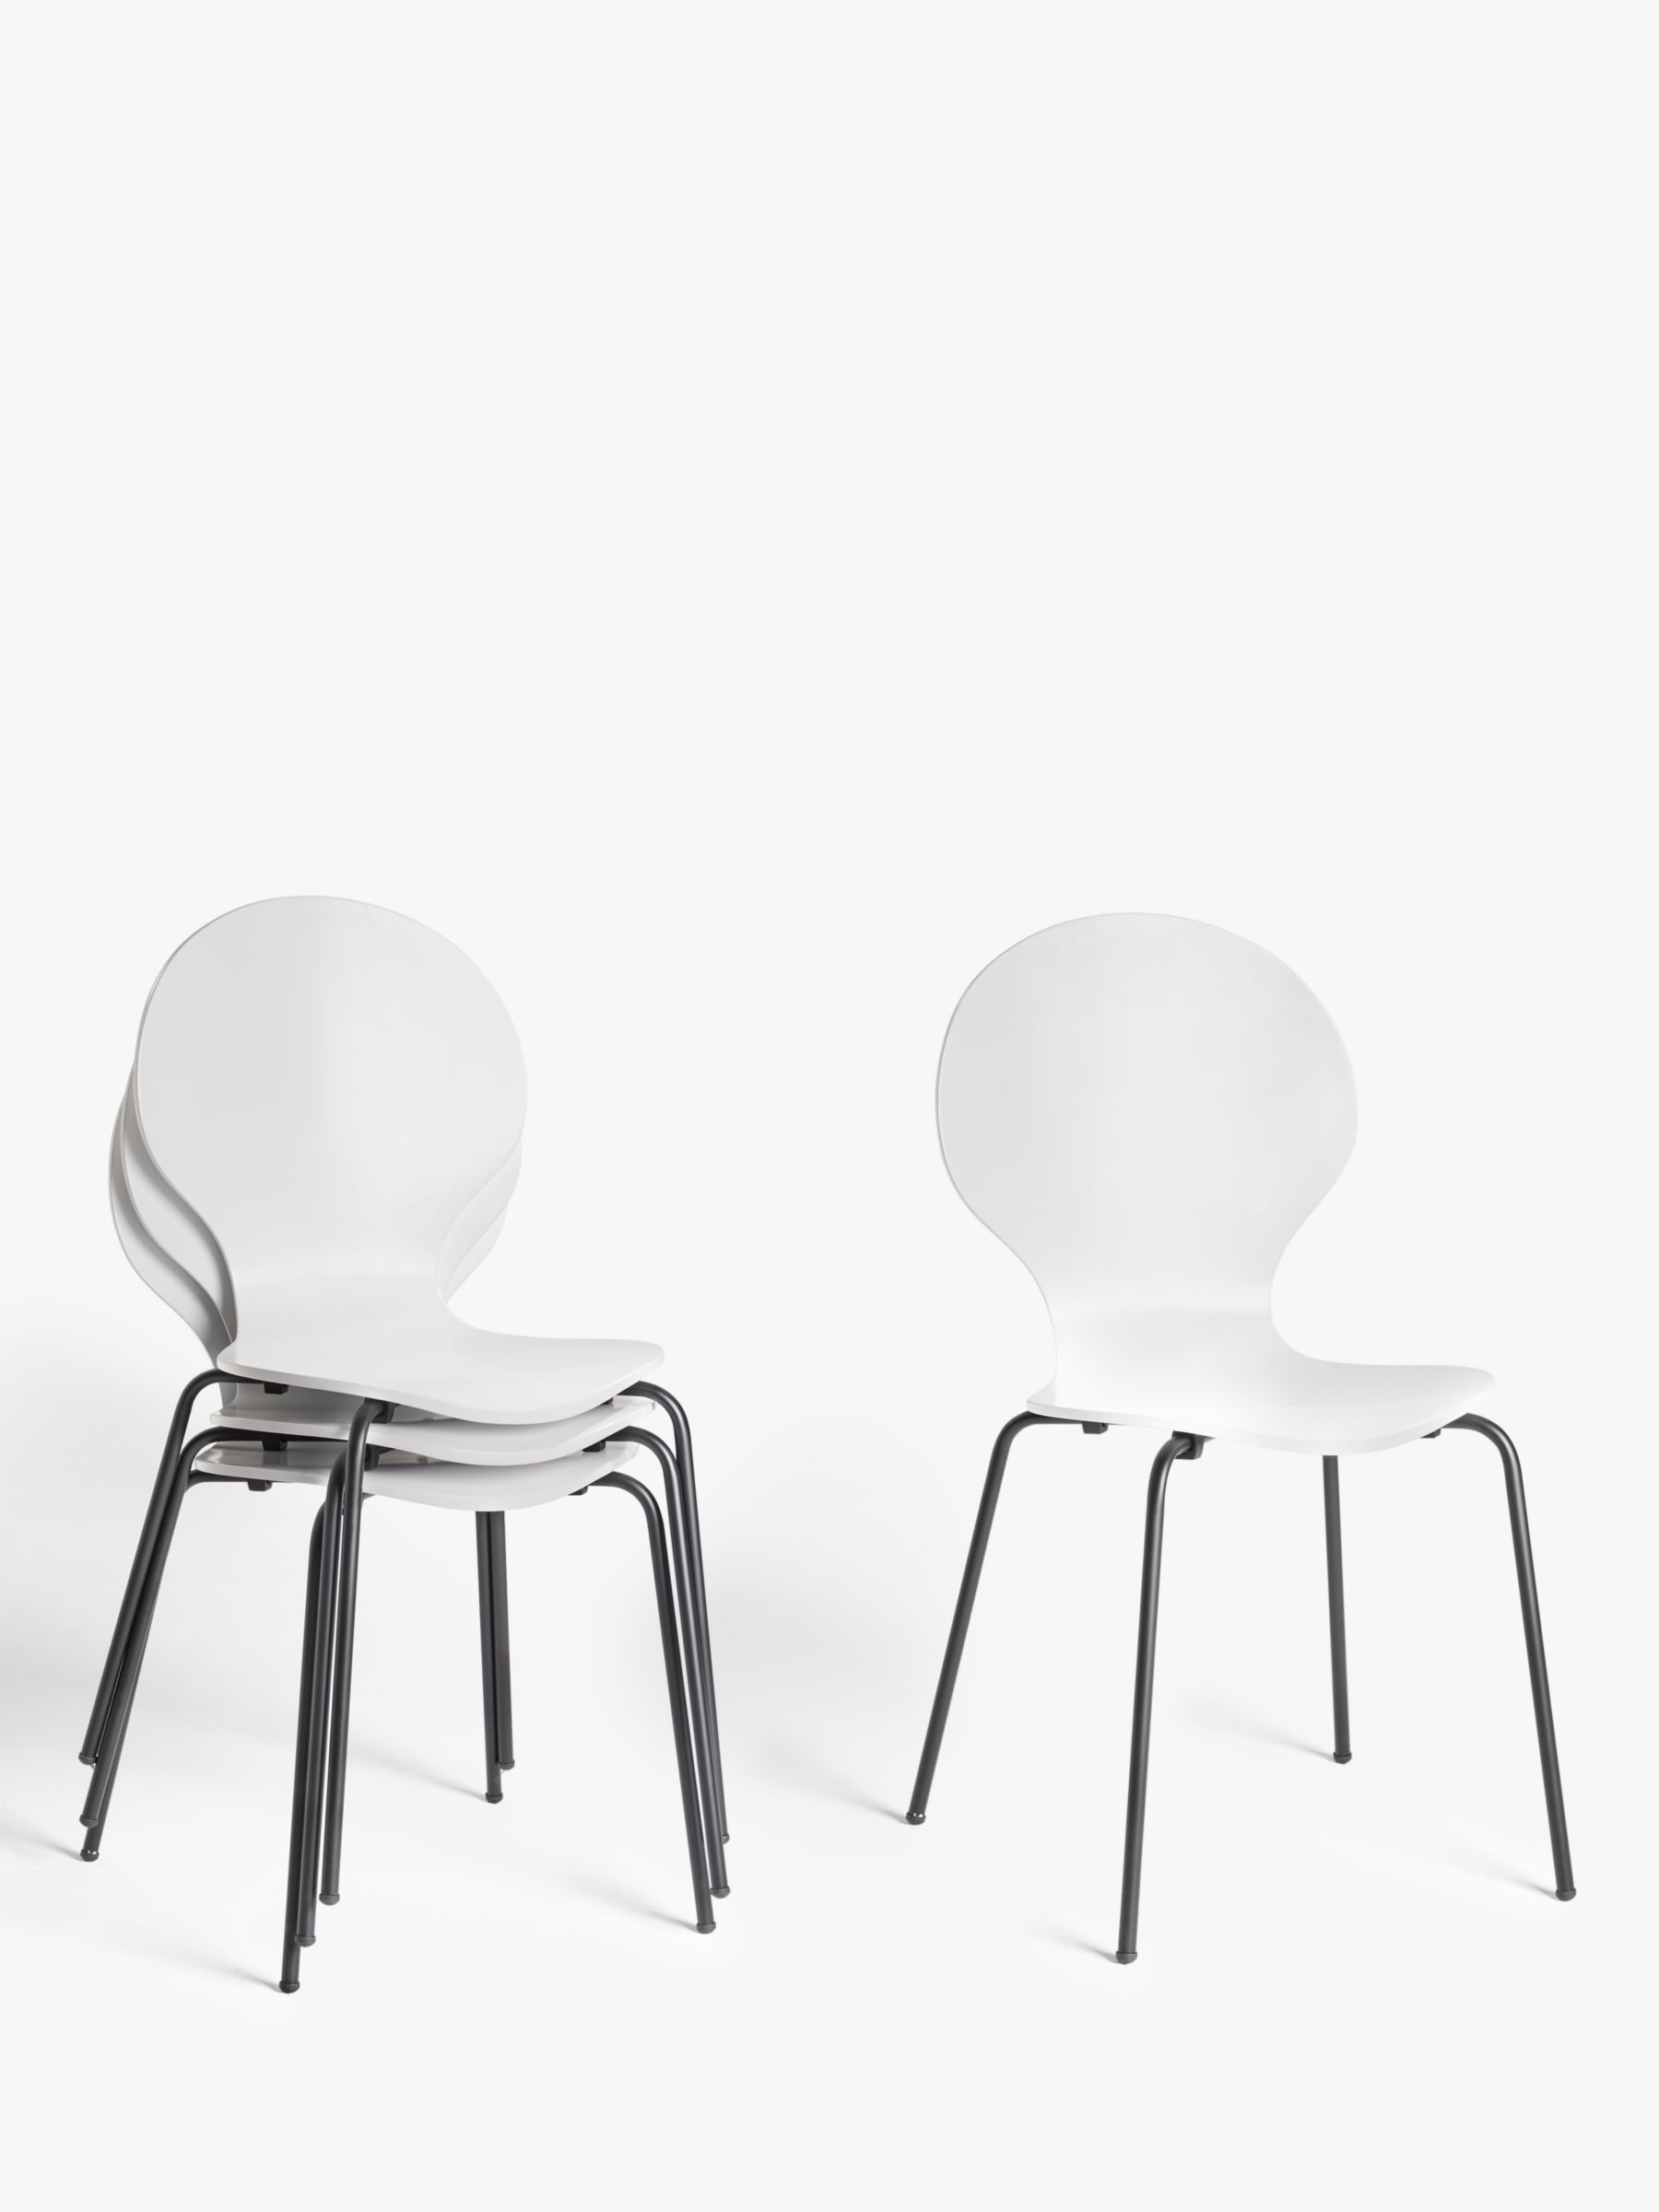 ANYDAY John Lewis & Partners Crescent Dining Chairs, White, Set of 9